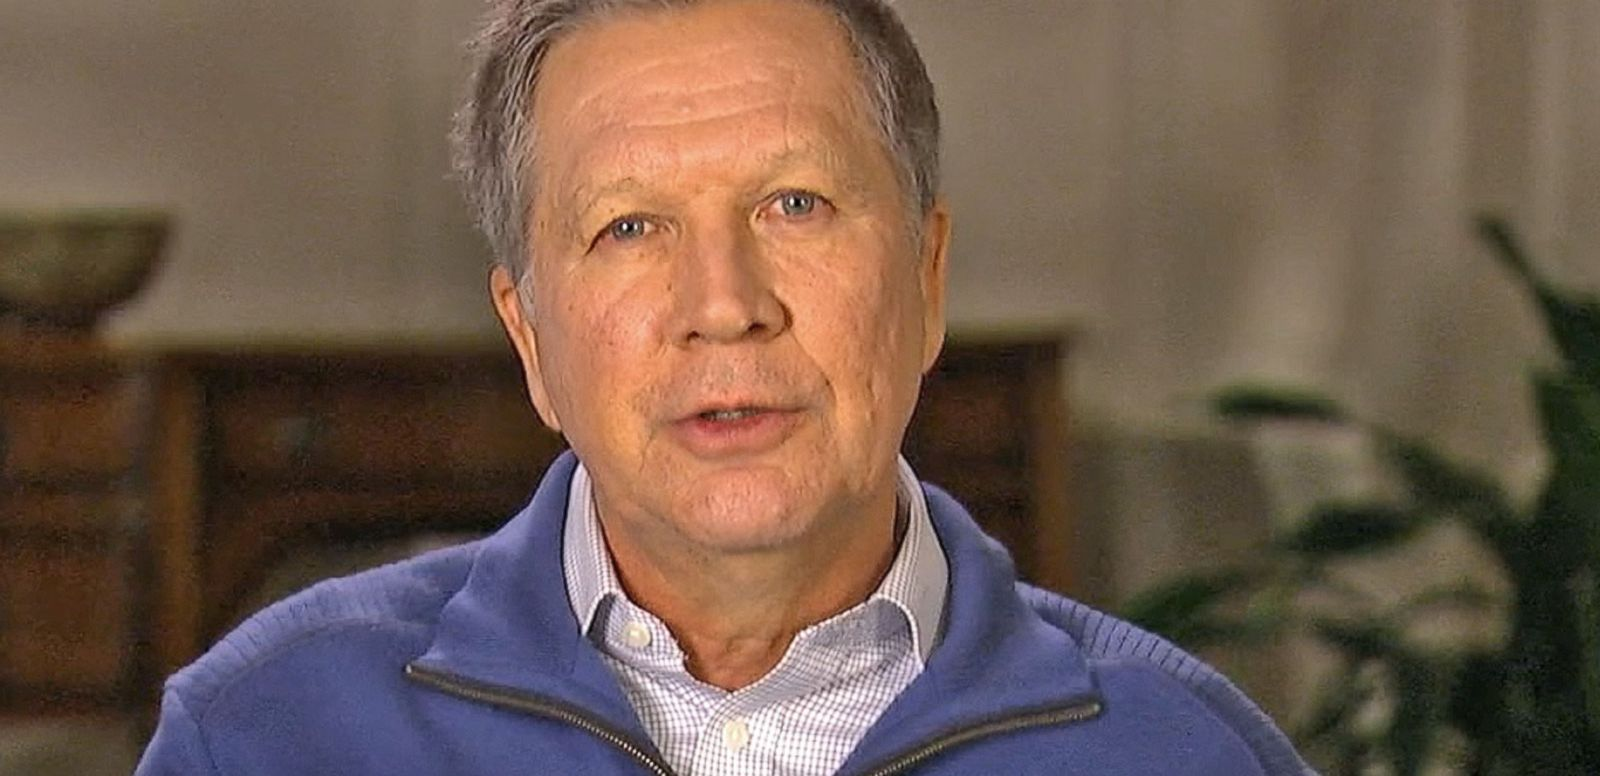 VIDEO: Gov. John Kasich on Death of Justice Scalia, 2016 Presidential Race